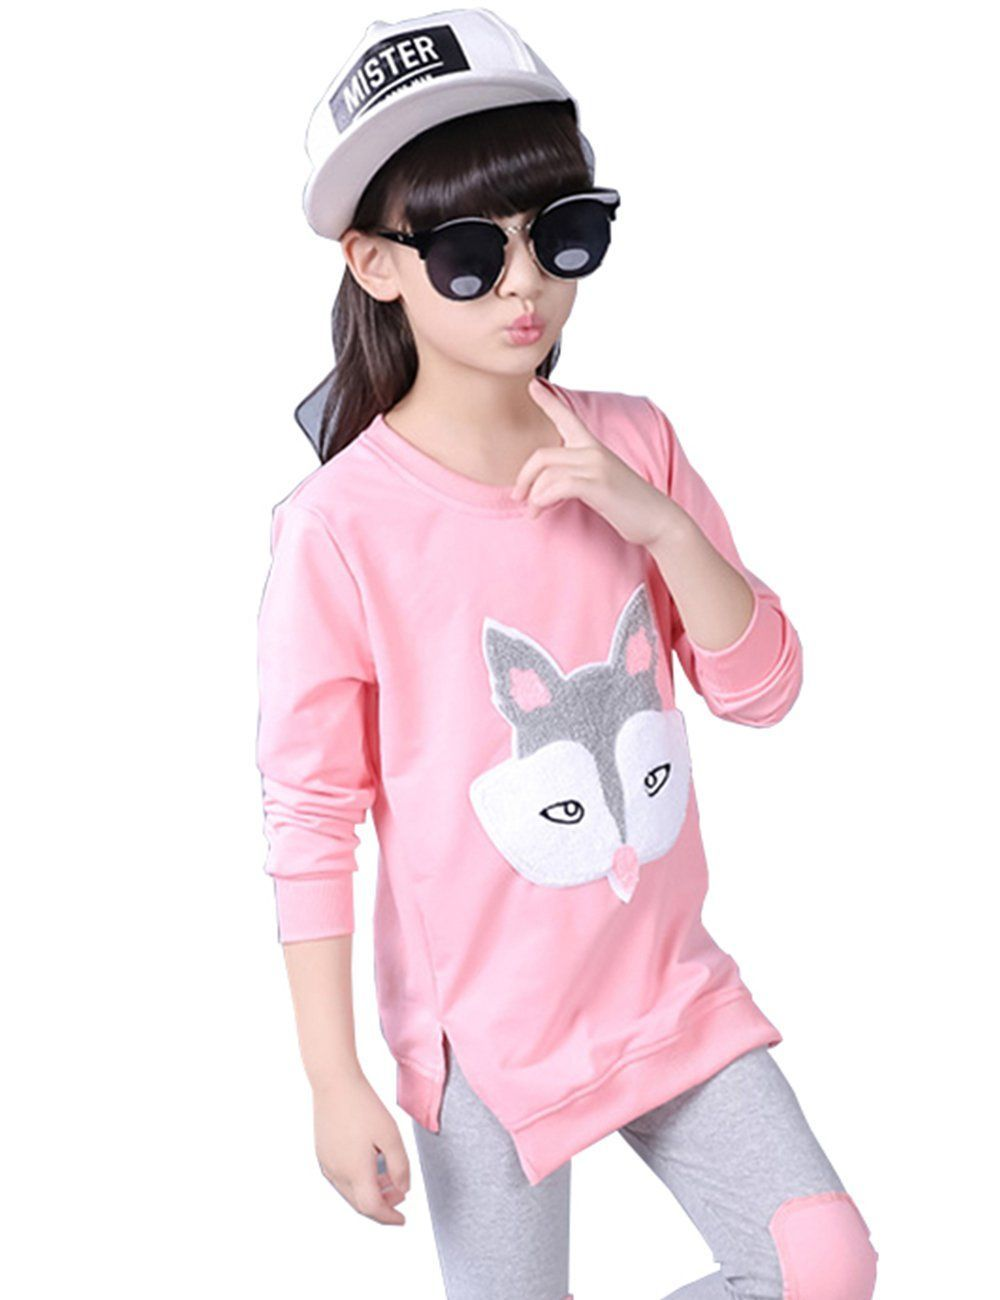 Little Hand Girls Toddler Clothing Sets Pajamas Fox Long Sleeve Sleepwear  Outfits 2 Piece For Kids 4 5 6 7 8 9 T. Package 1 sweatshirt + 1 skinny  pants. 2de76dded